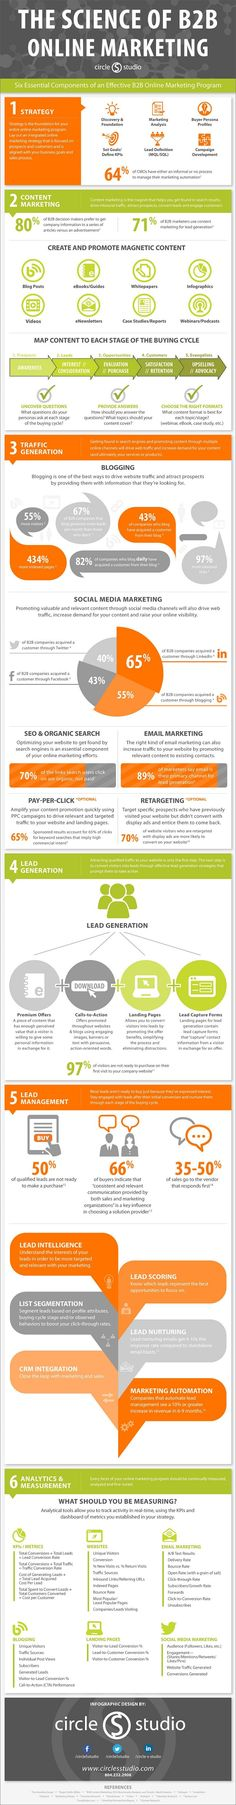 Marketing Strategy - The Science of B2B Online Marketing [Infographic] : MarketingProfs Article